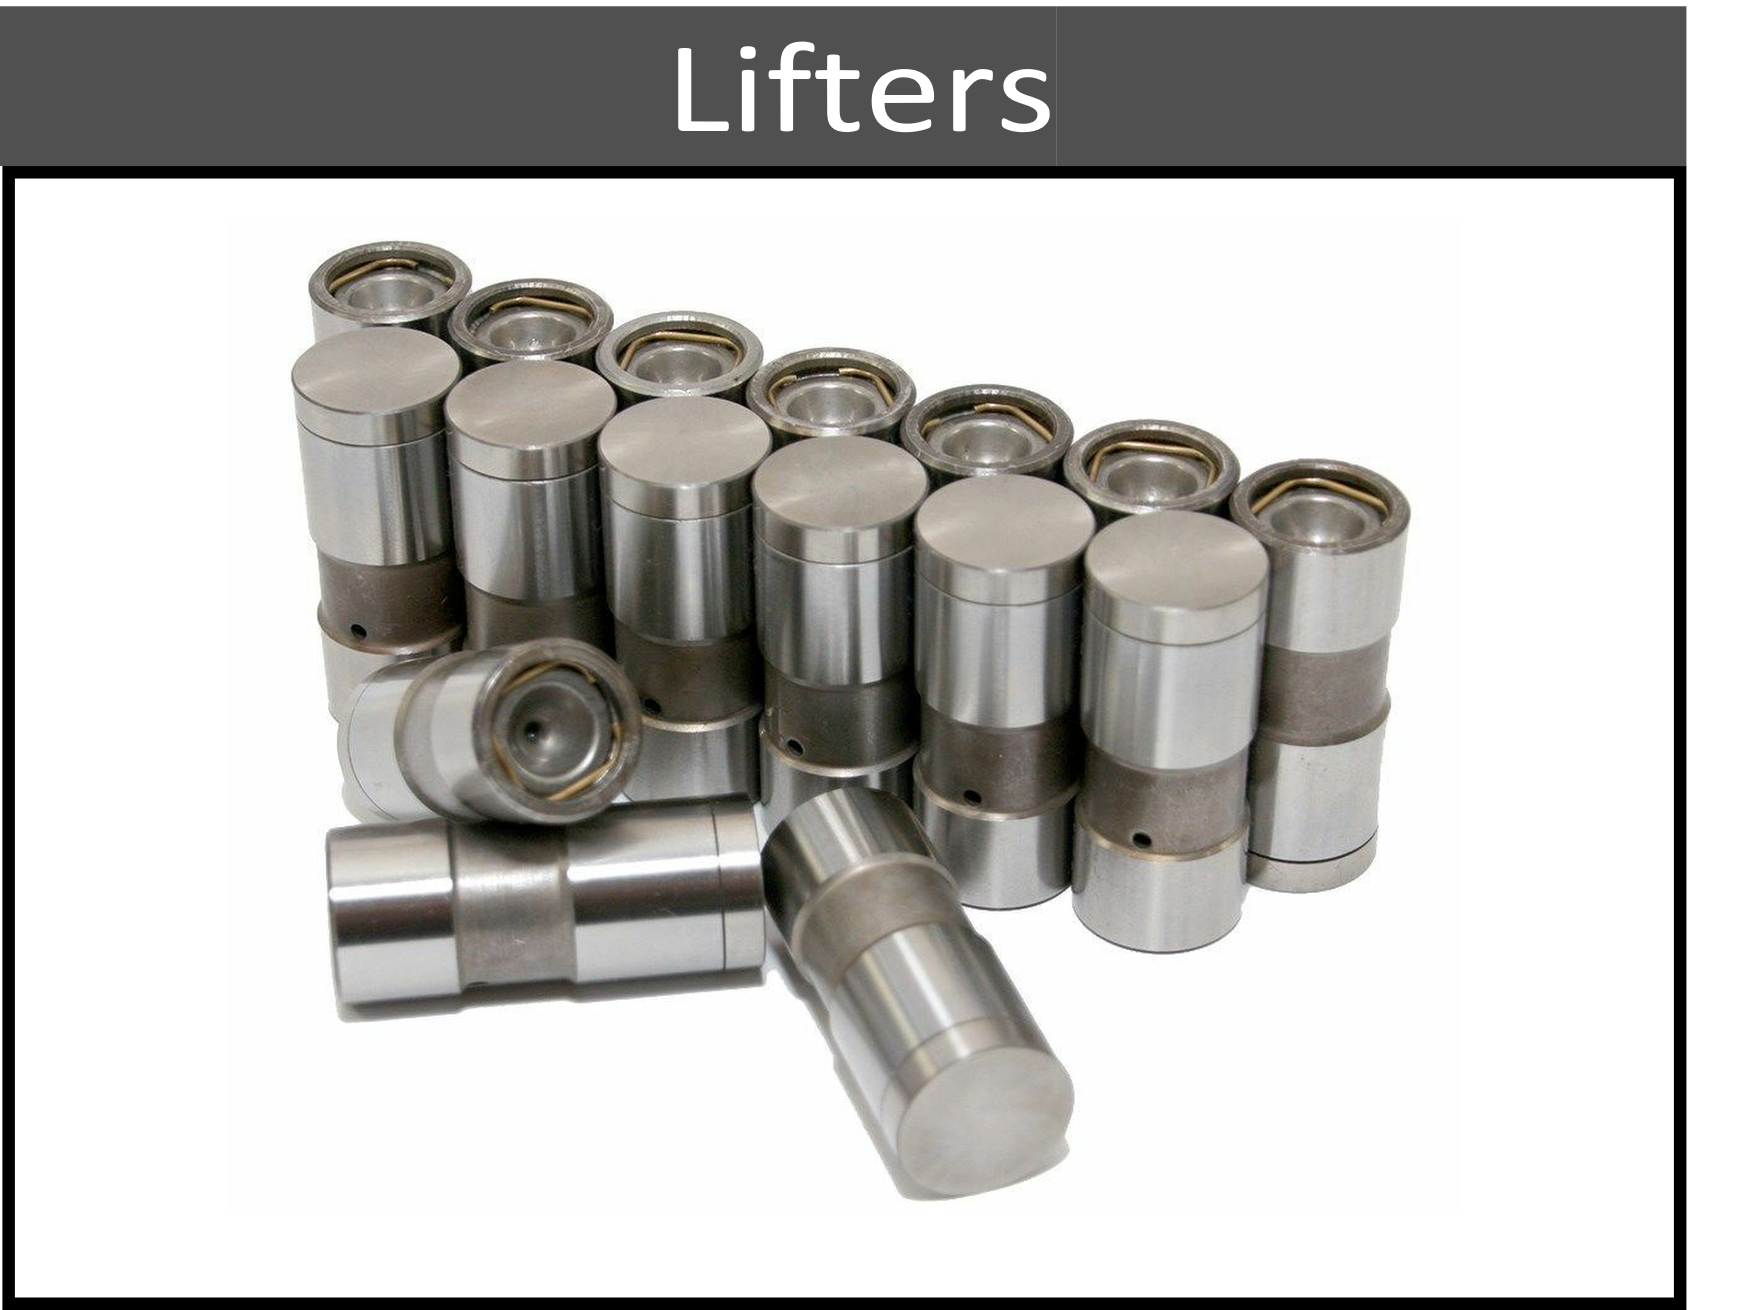 Replacement Camshaft Lifters